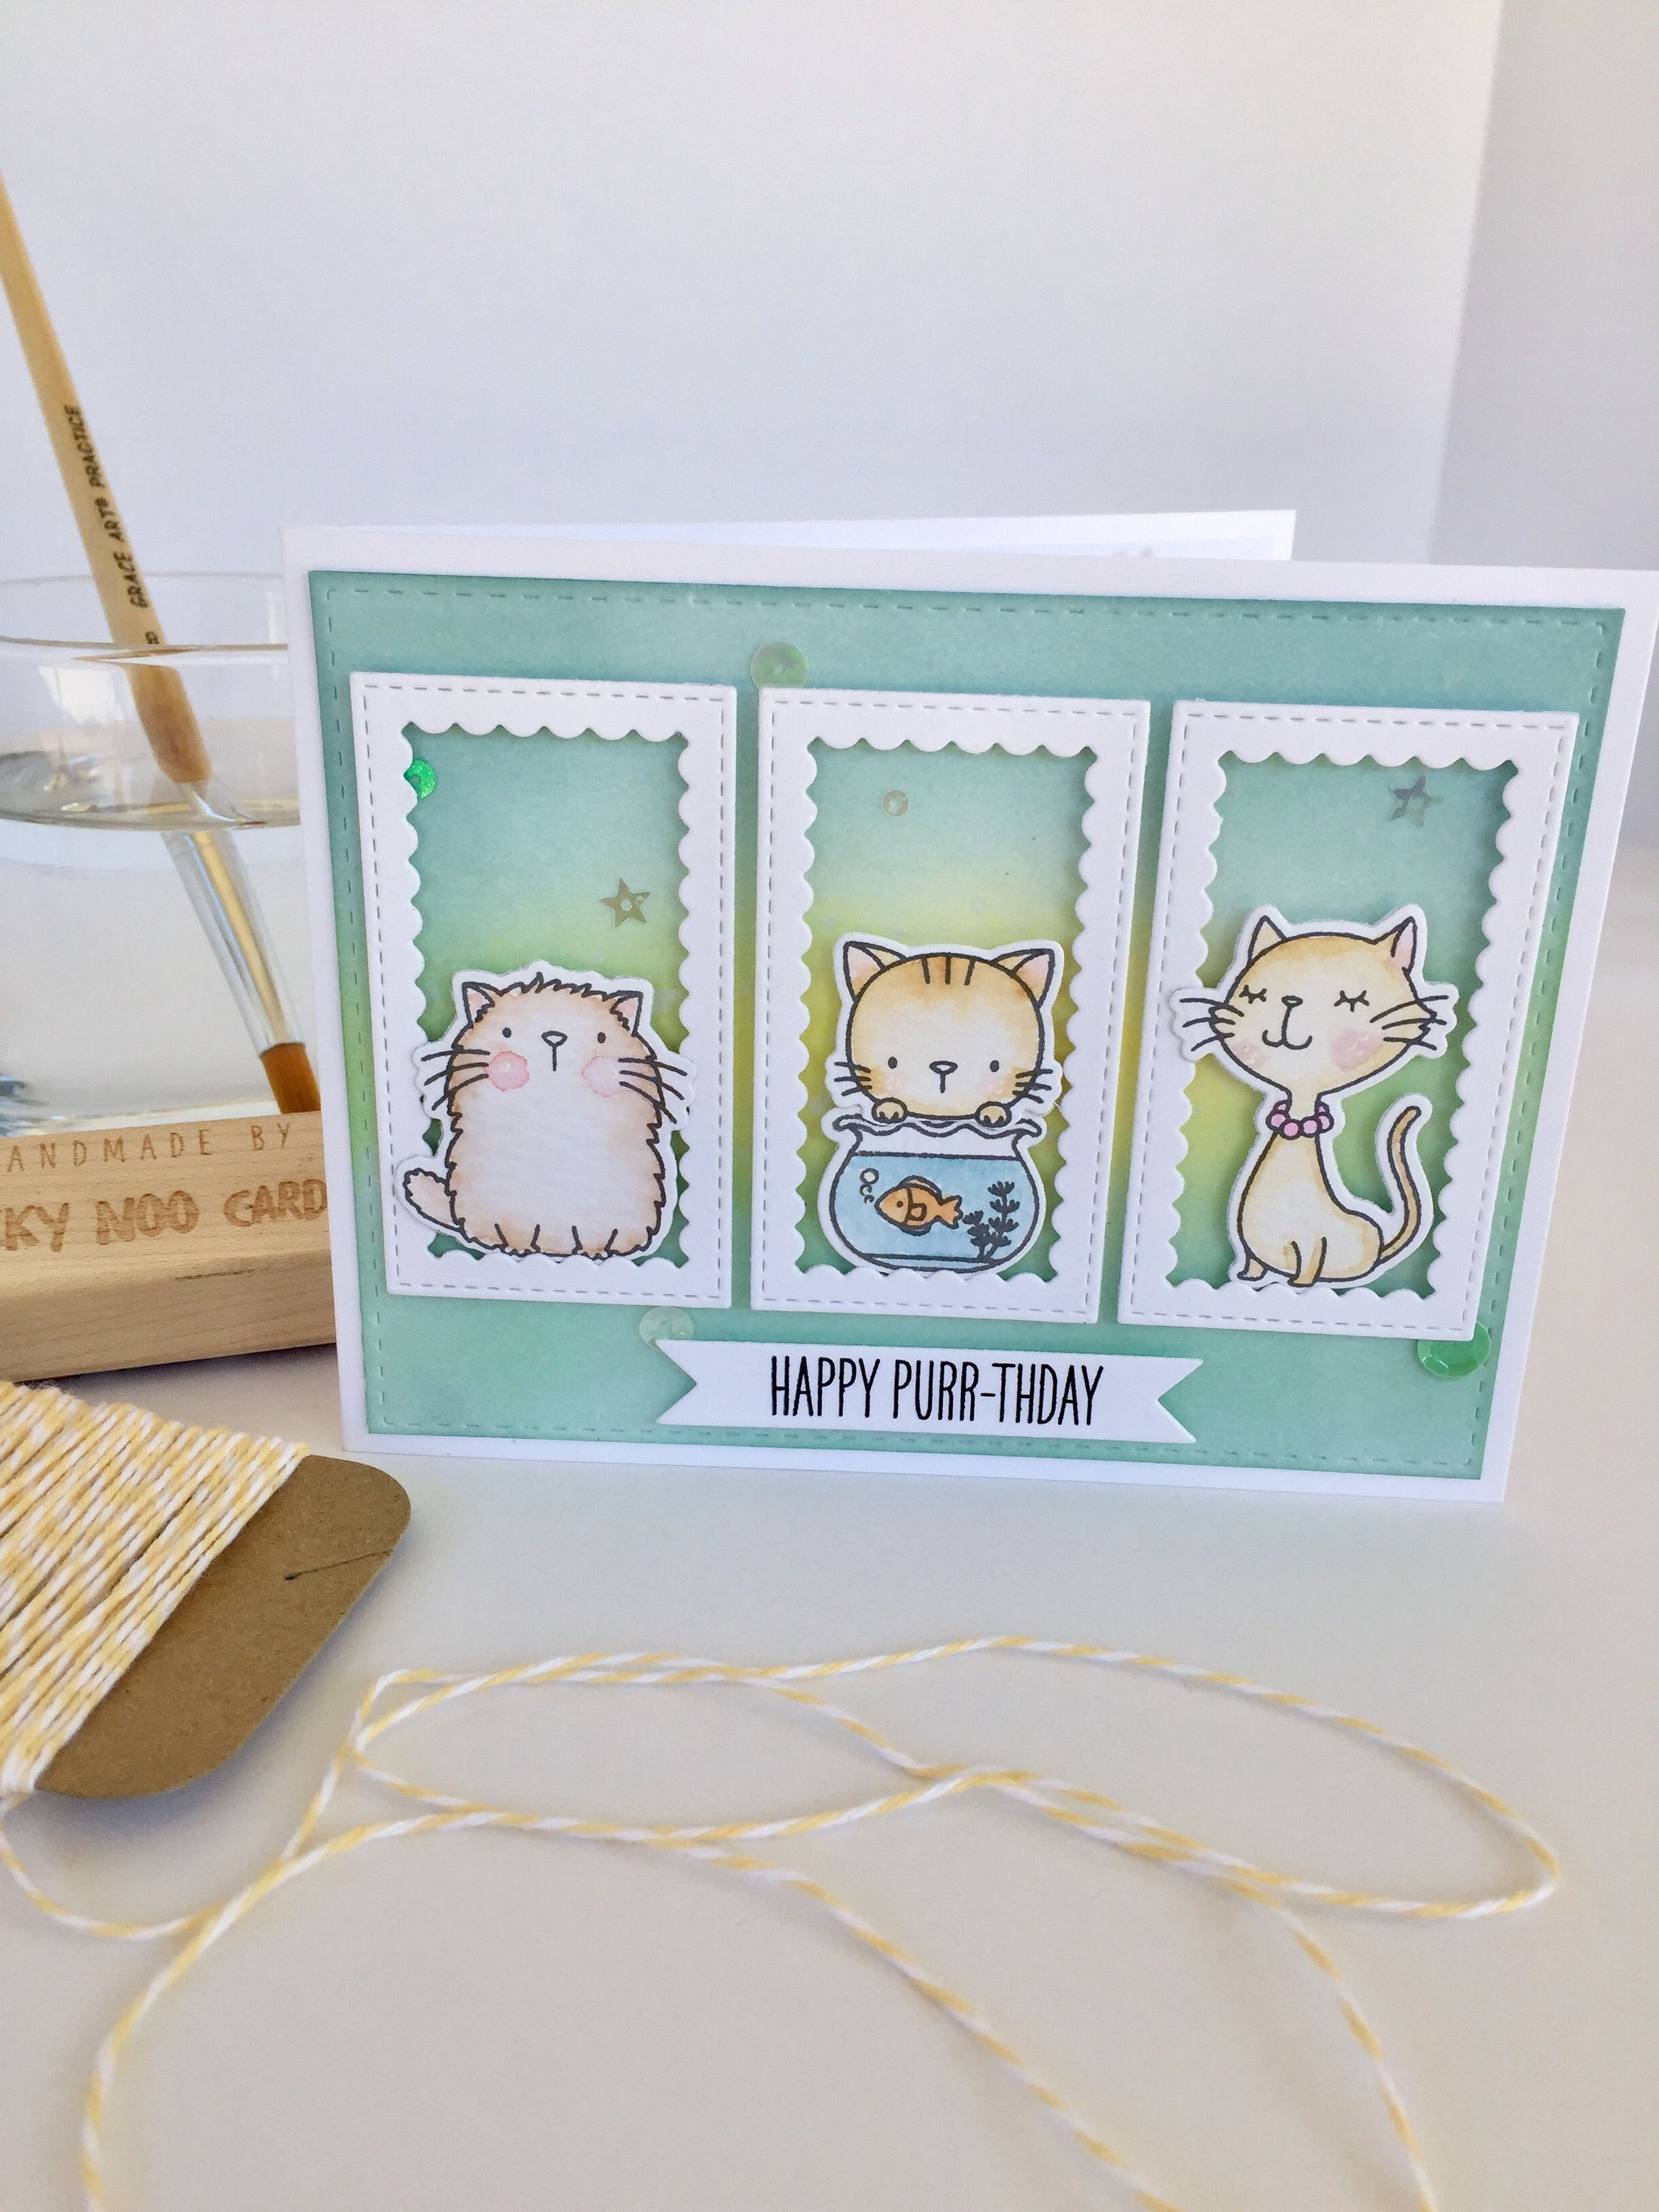 Cool Cat Mft Card By Nicky Noo Cards Nickynoocards And Https